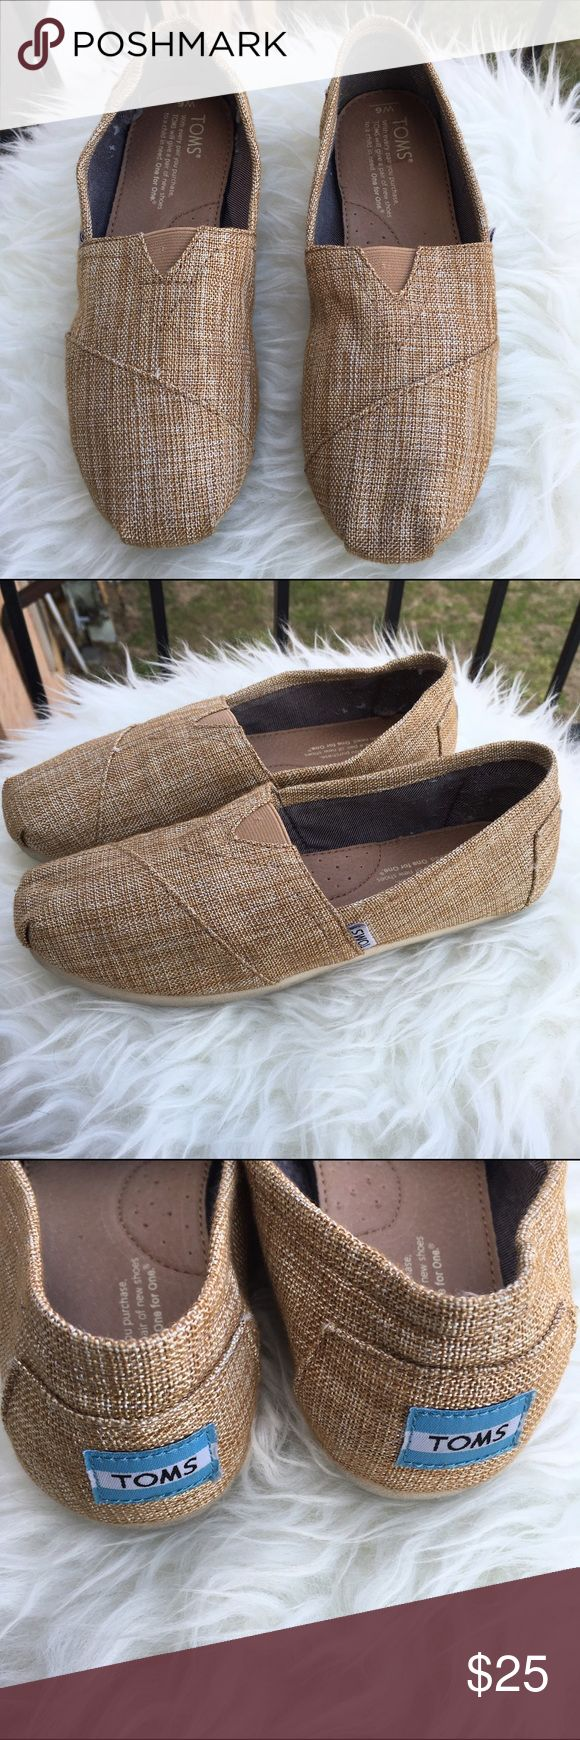 Classic Burlap TOMS Classic Burlap TOMS  Gold Shimmer  Excellent condition ✨  No Tears  Smoke free home 🚭 20% off of 4 or more bundled items! TOMS Shoes Espadrilles